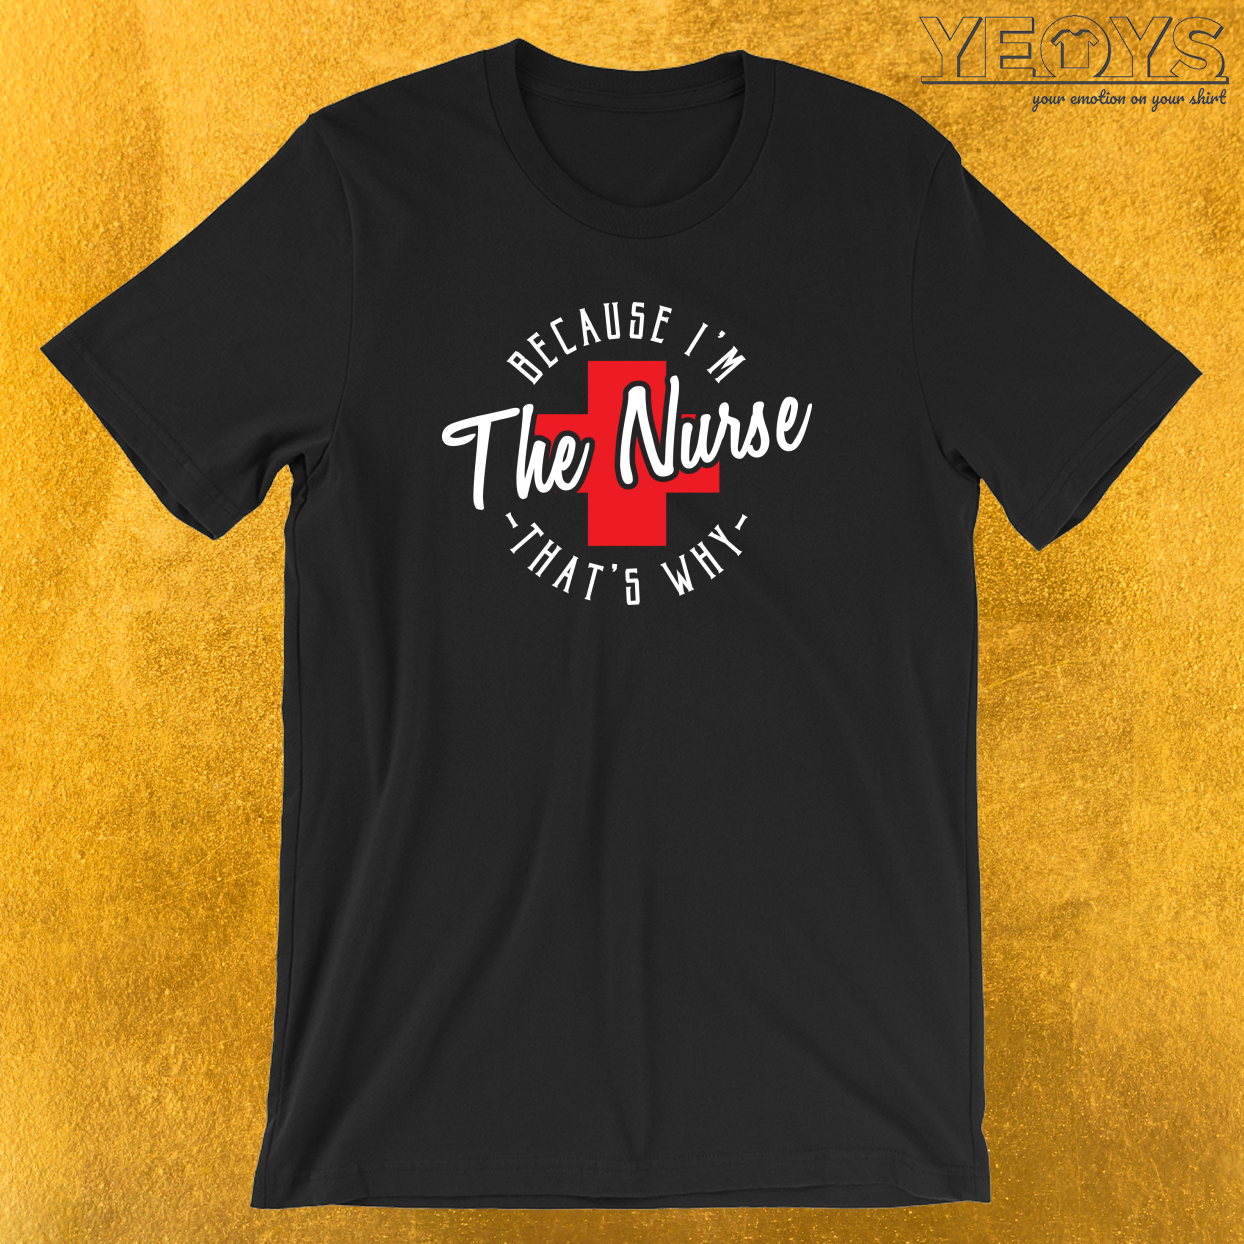 Because I'm The Nurse That's Why T-Shirt